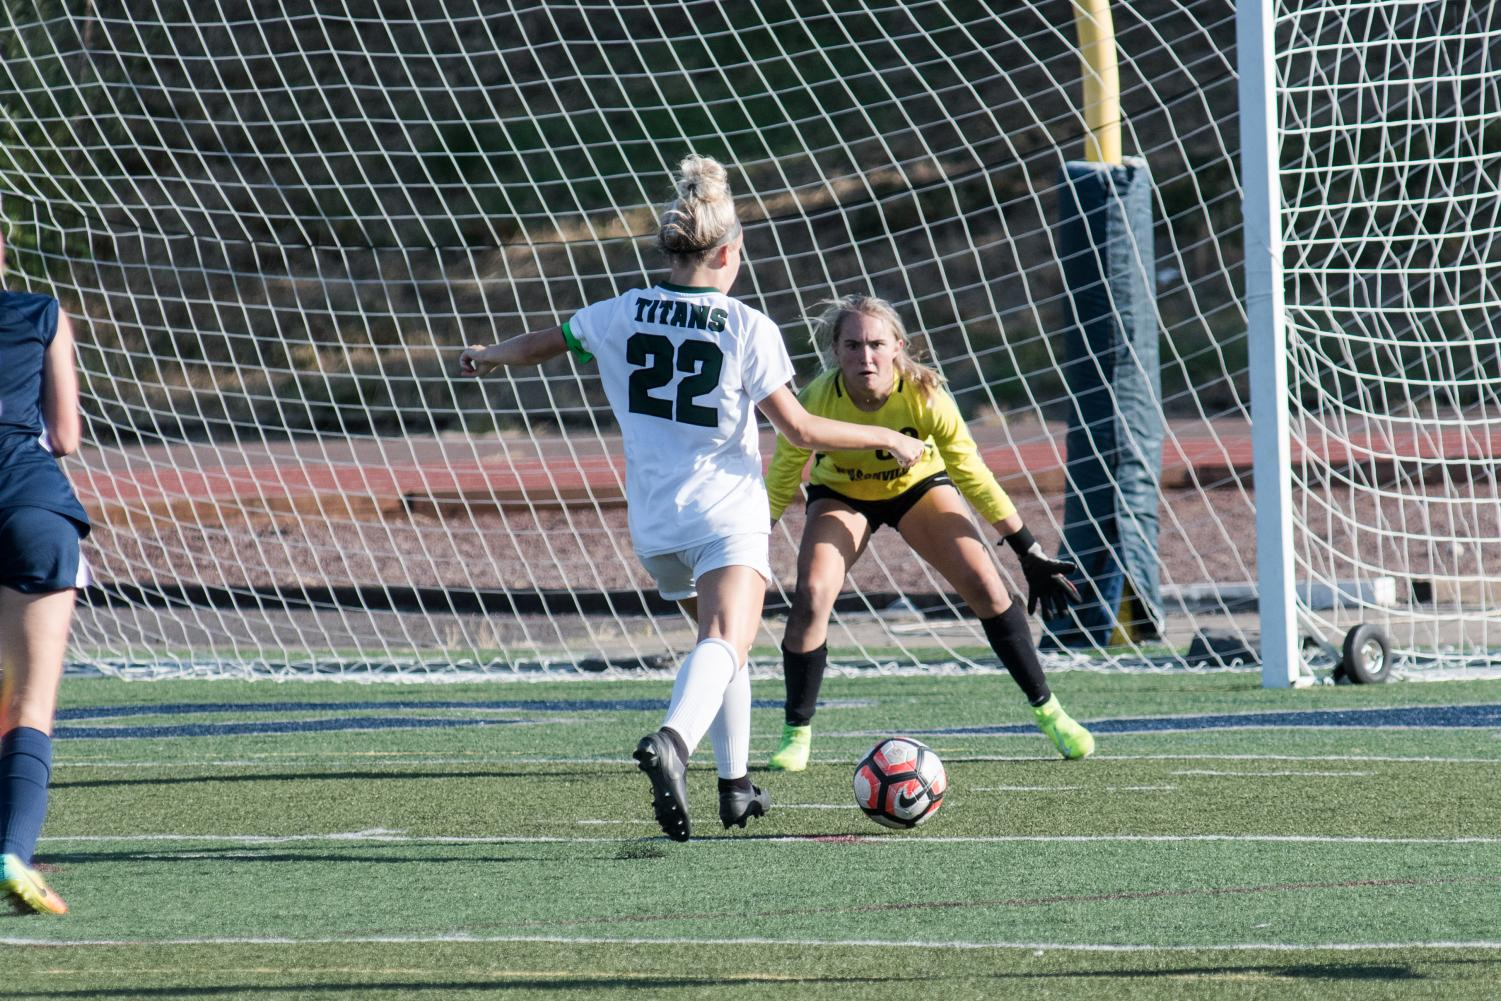 West Salem forward Paige Alexander takes on senior goalie Kendall Taylor. Alexander went on to win the OSAA Athlete of the Week after this performance.